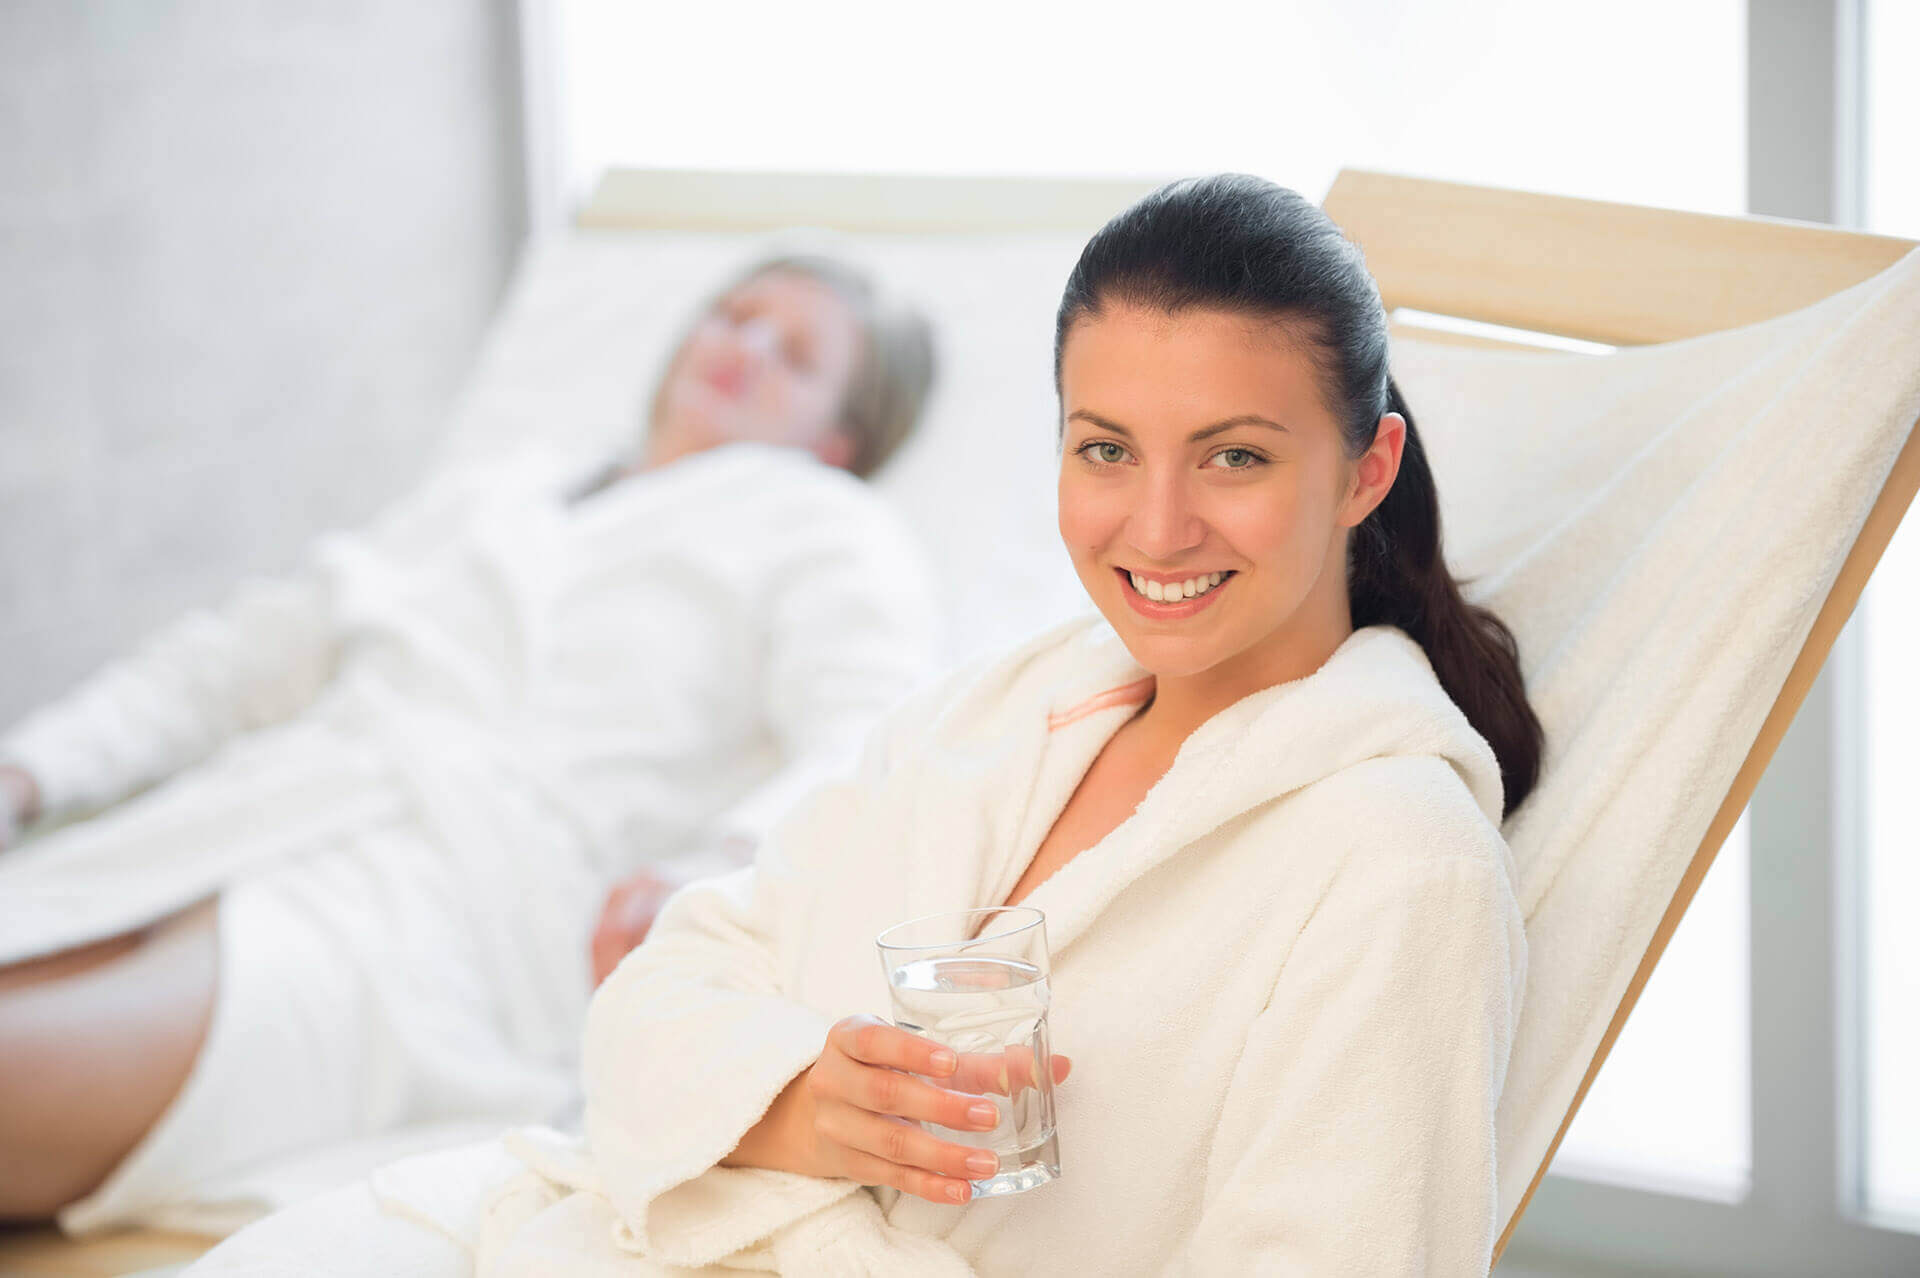 [object object] - smiling woman hold glass of water at beauty spa majestic 1 - Massage